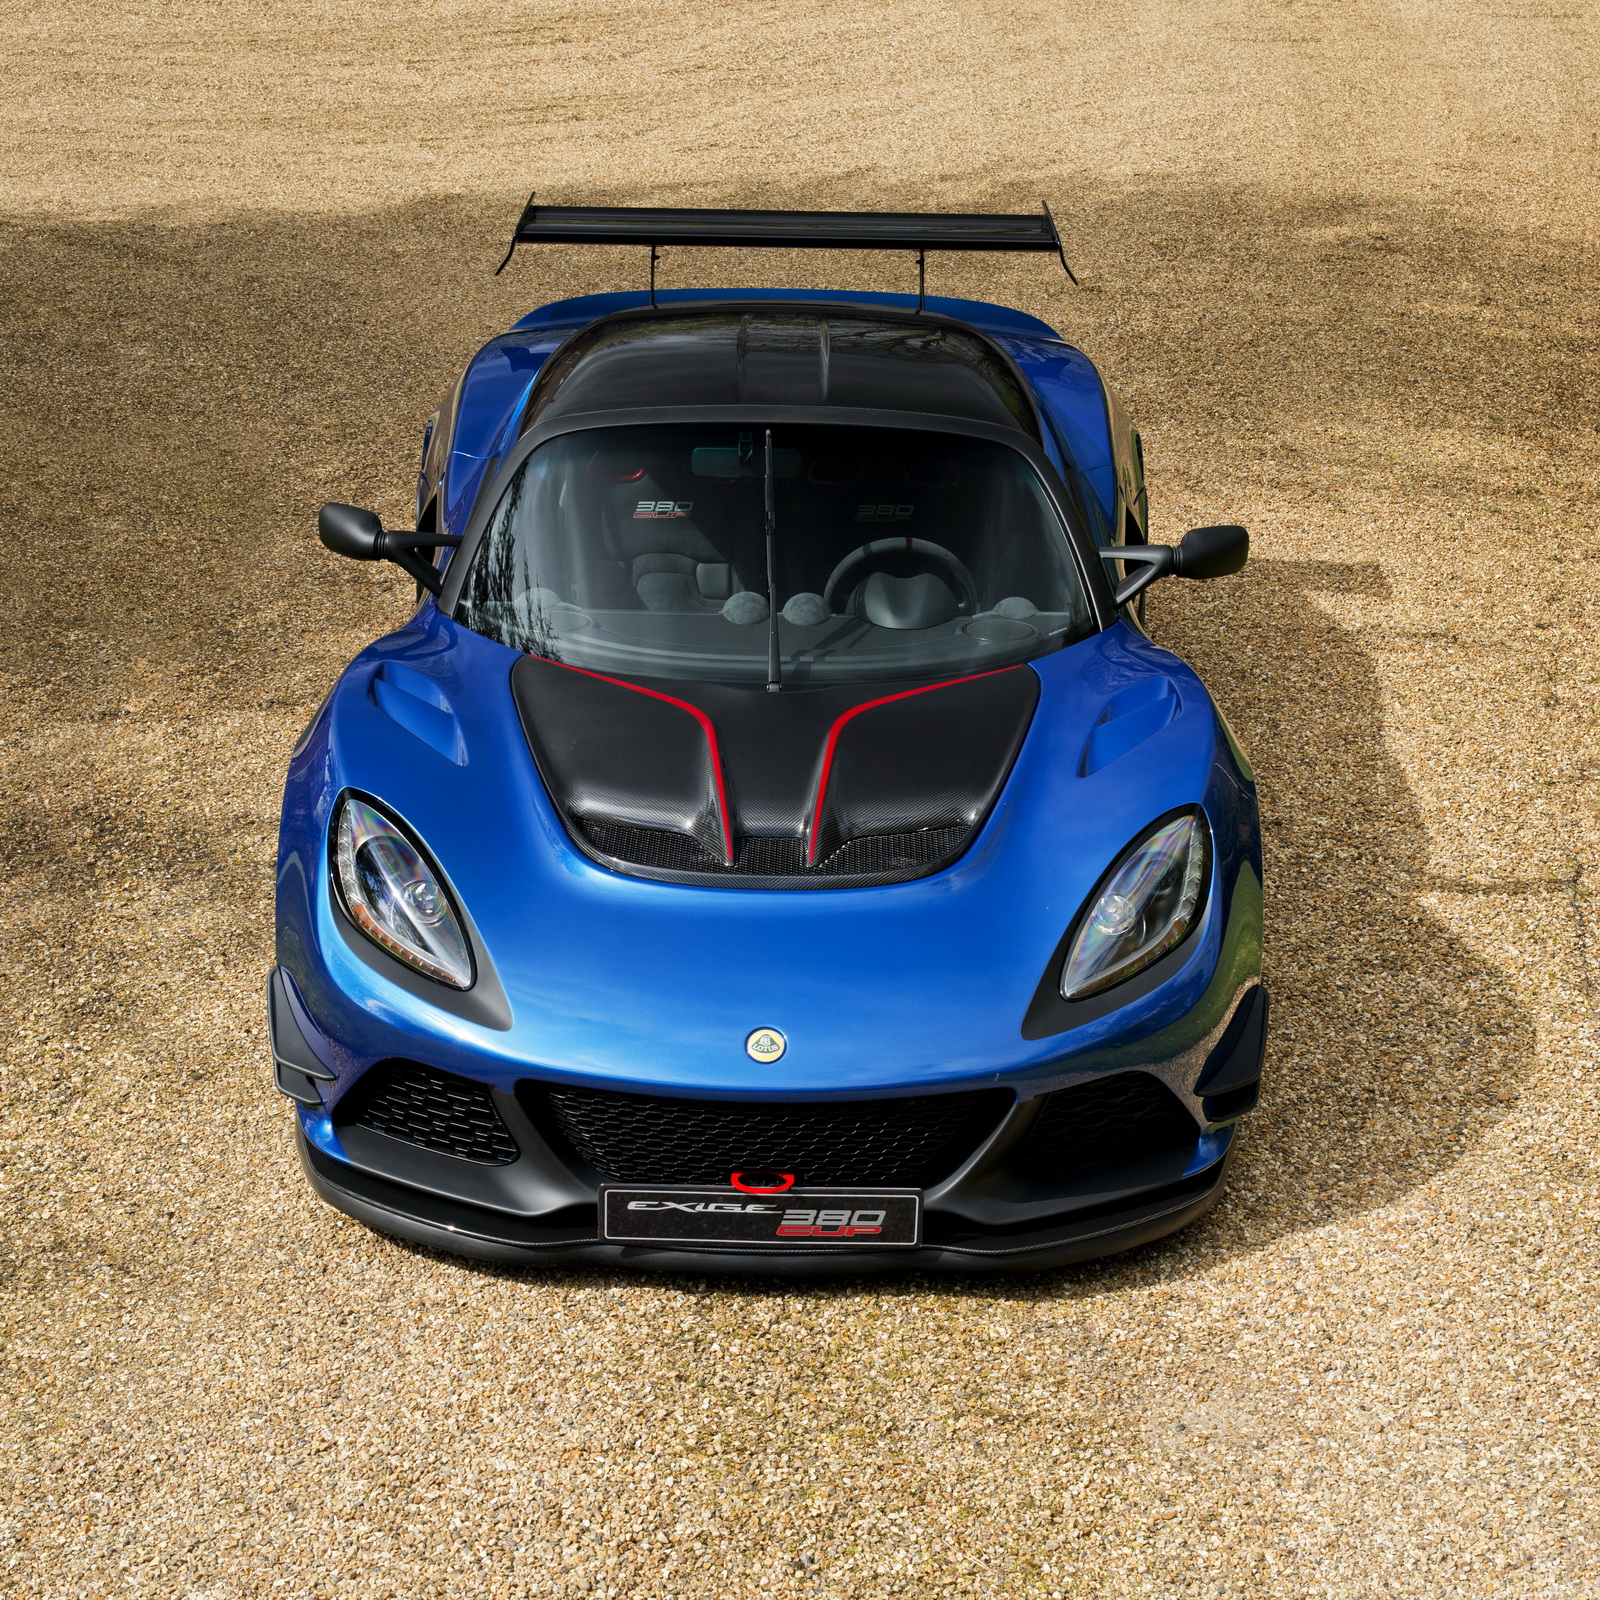 New Lotus Exige Cup 380 Is For Those Who Think A GT3 RS Is